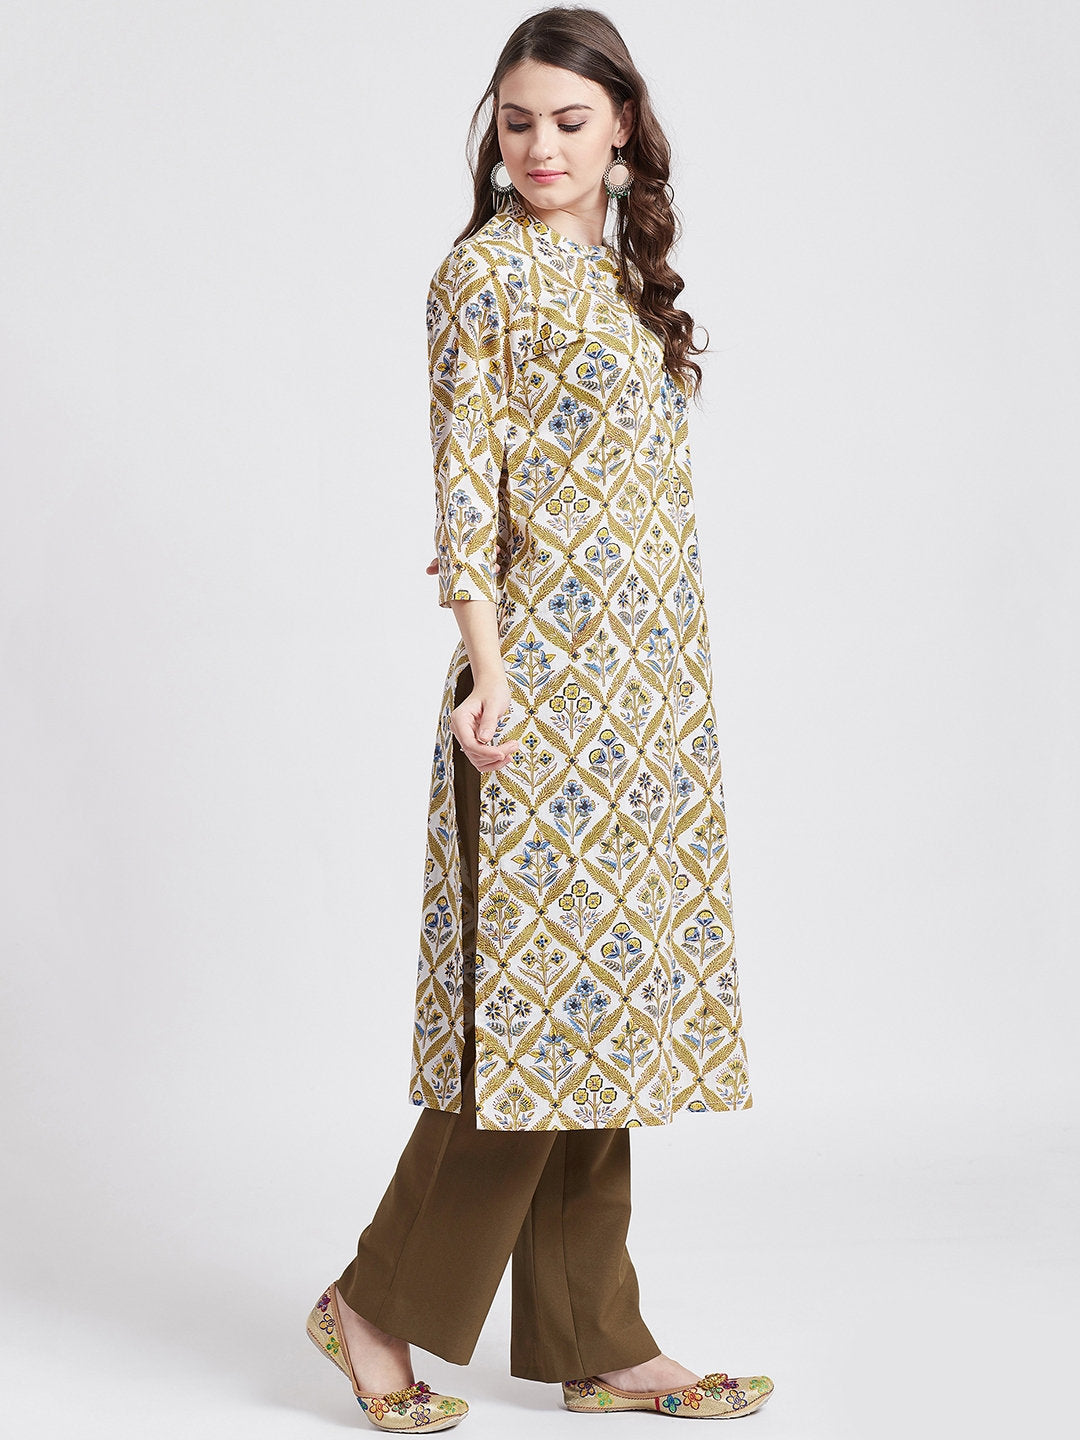 Hand block printed ethnic long Indian kurta with front button placket